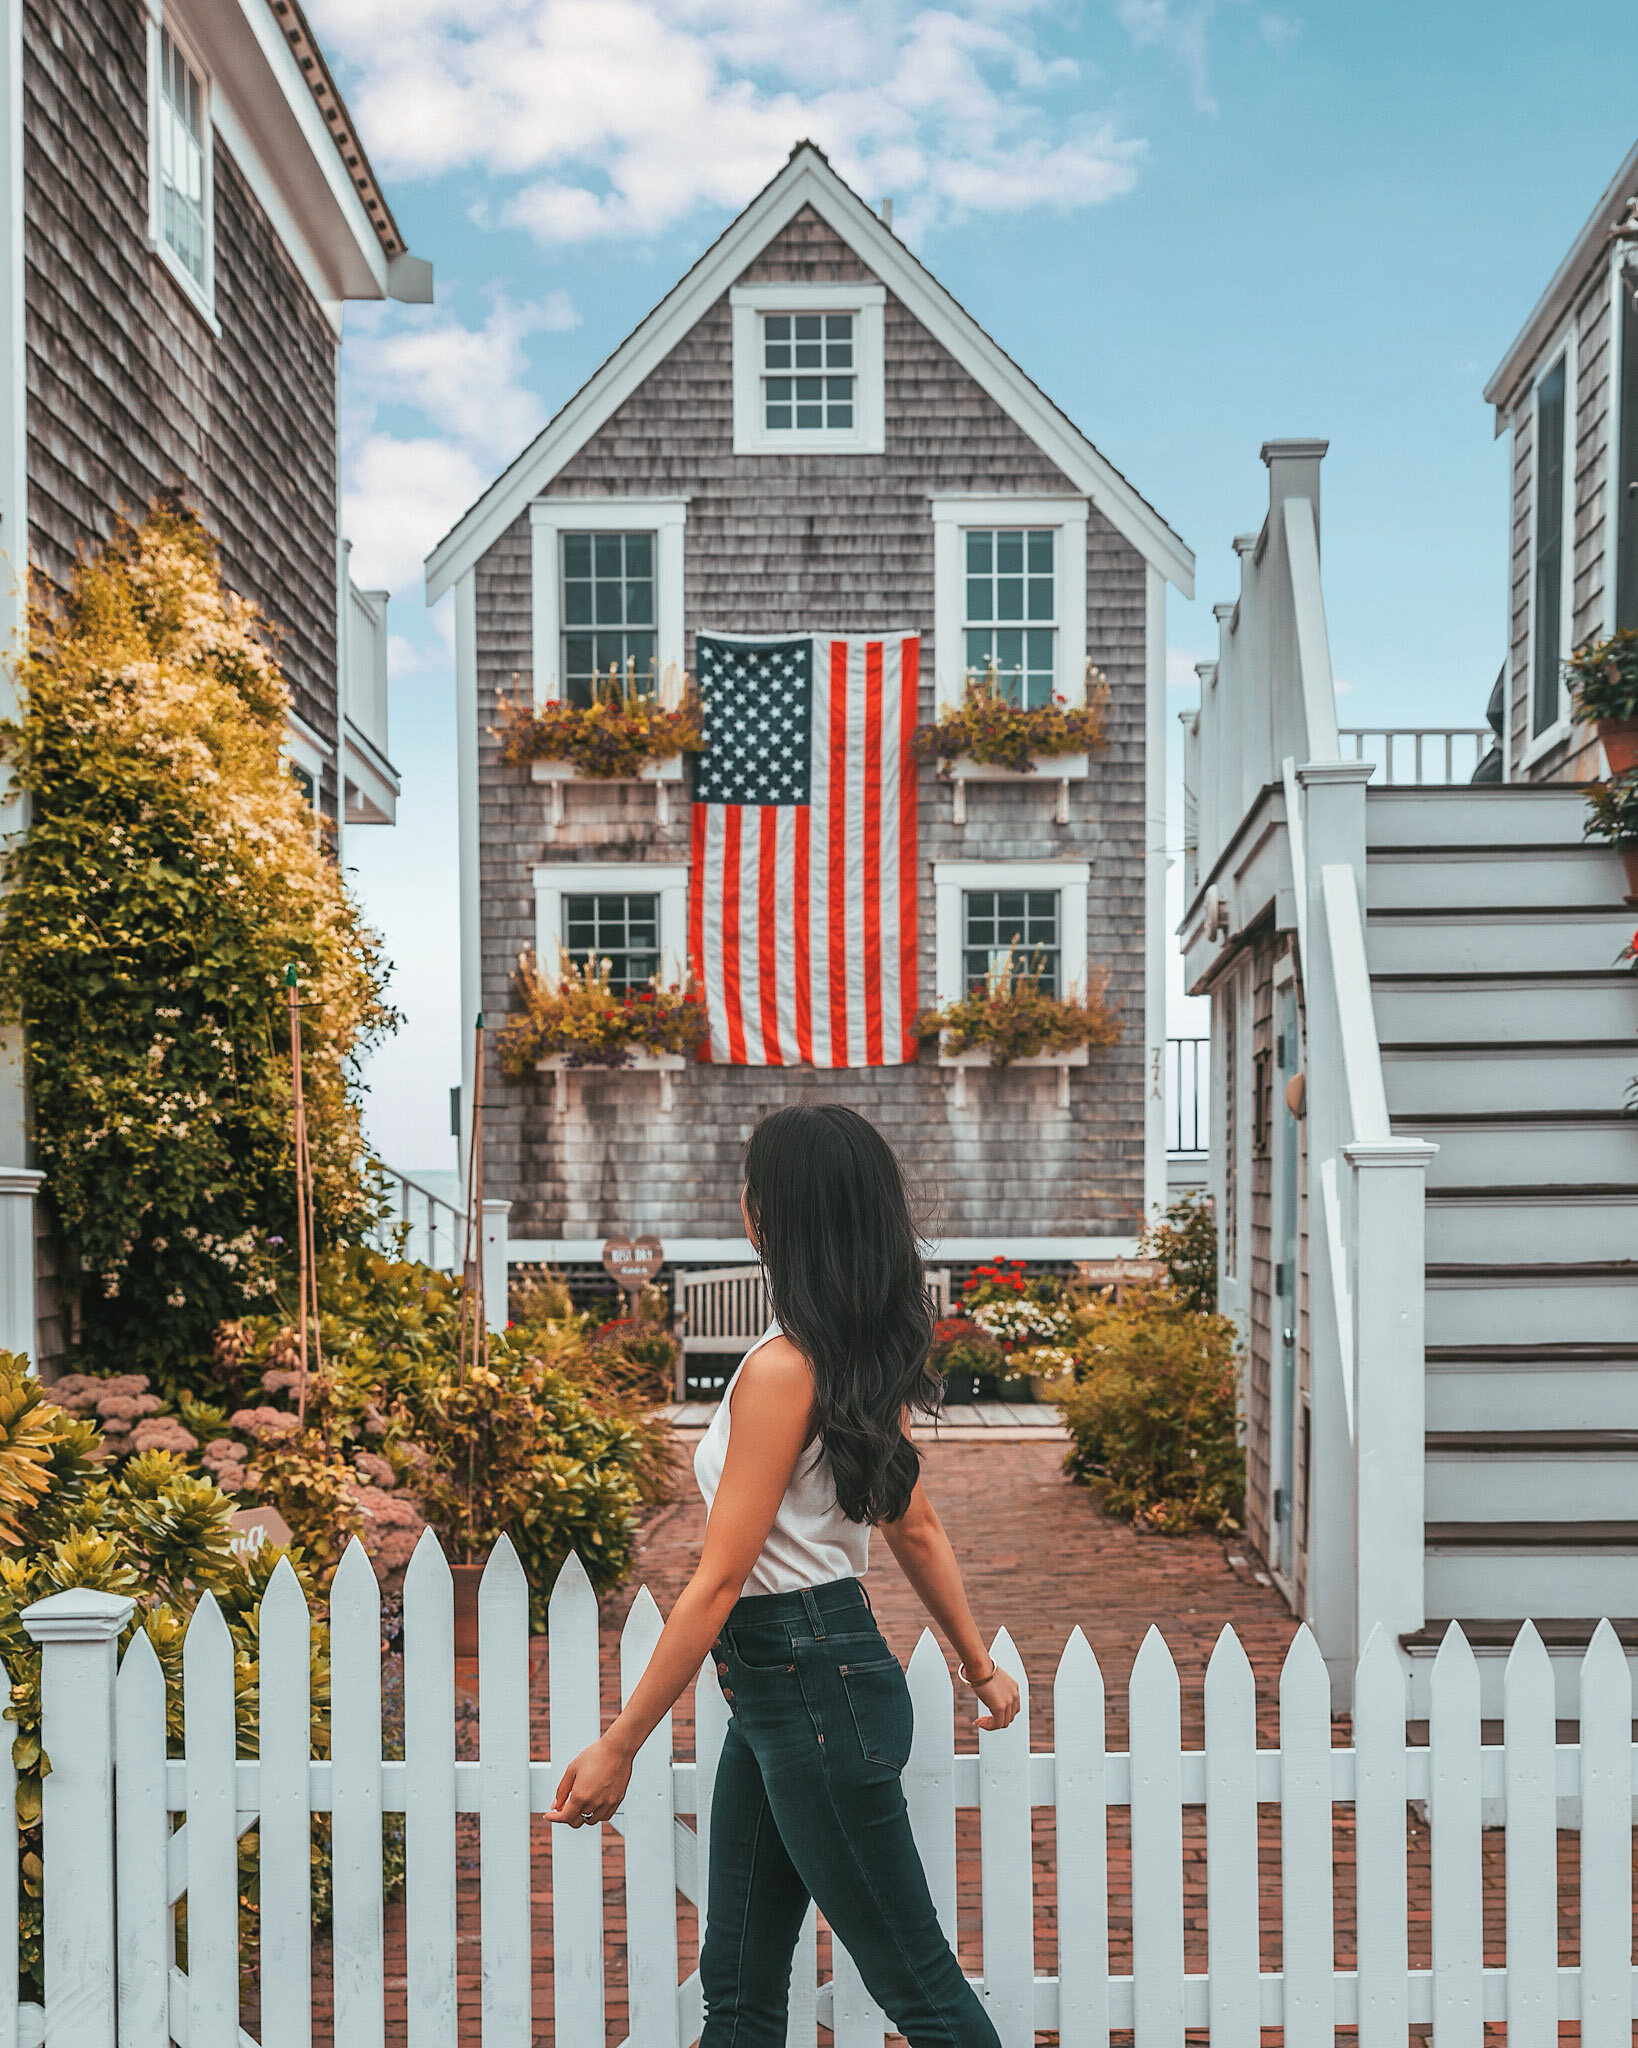 Provincetown, Massachusetts cute house // Cruise Review: 11-Day New England & Canada on the Seabourn Quest // #readysetjetset #cruise #luxury #travel #cruising